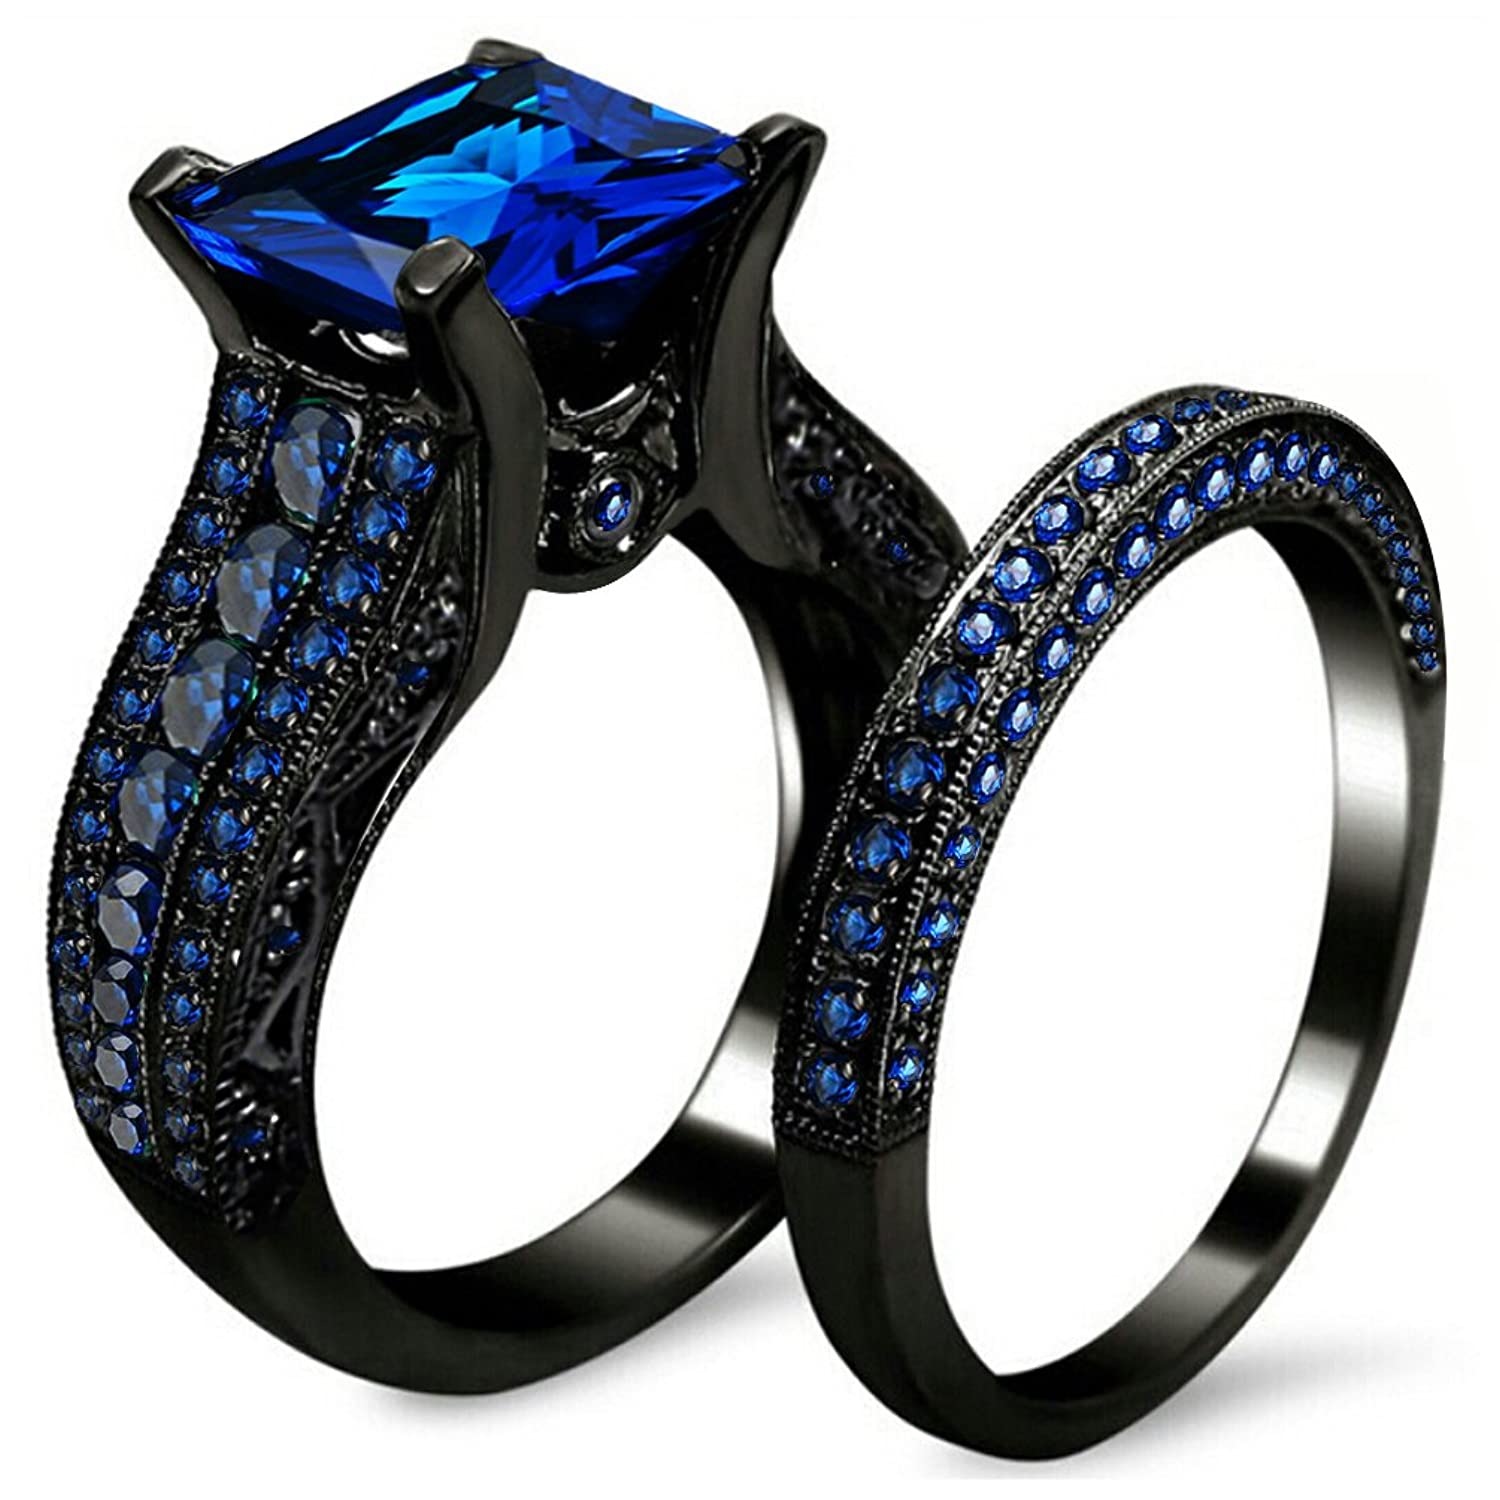 rings online wedding royal jewelry product getsubject fashion still silver aeproduct stone cheap blue here